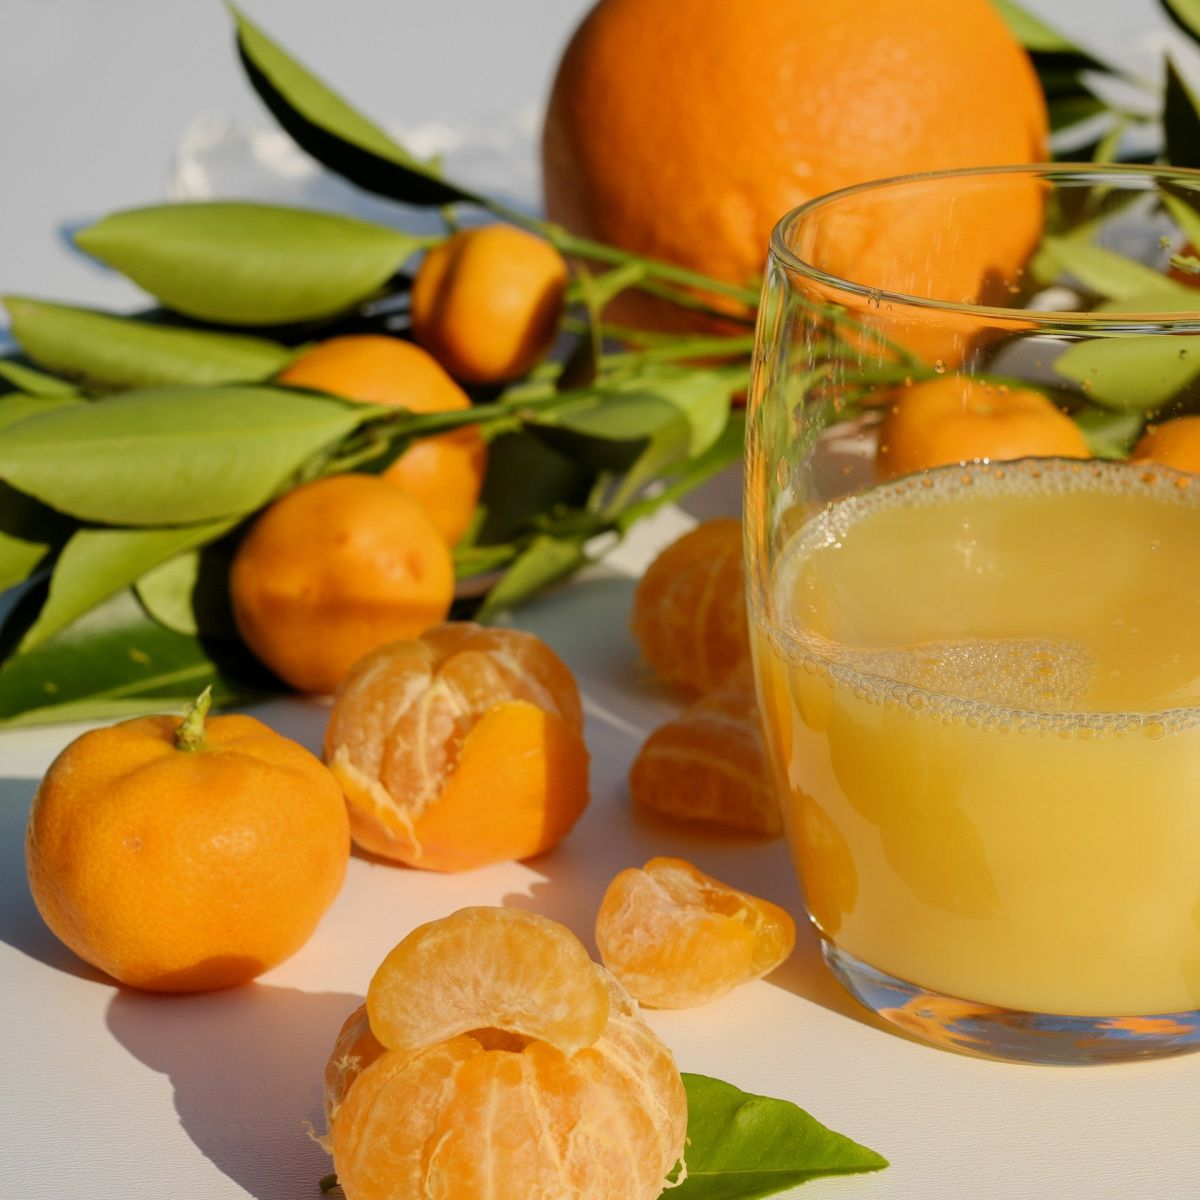 What a glass of mandarin juice can do for your health this winter